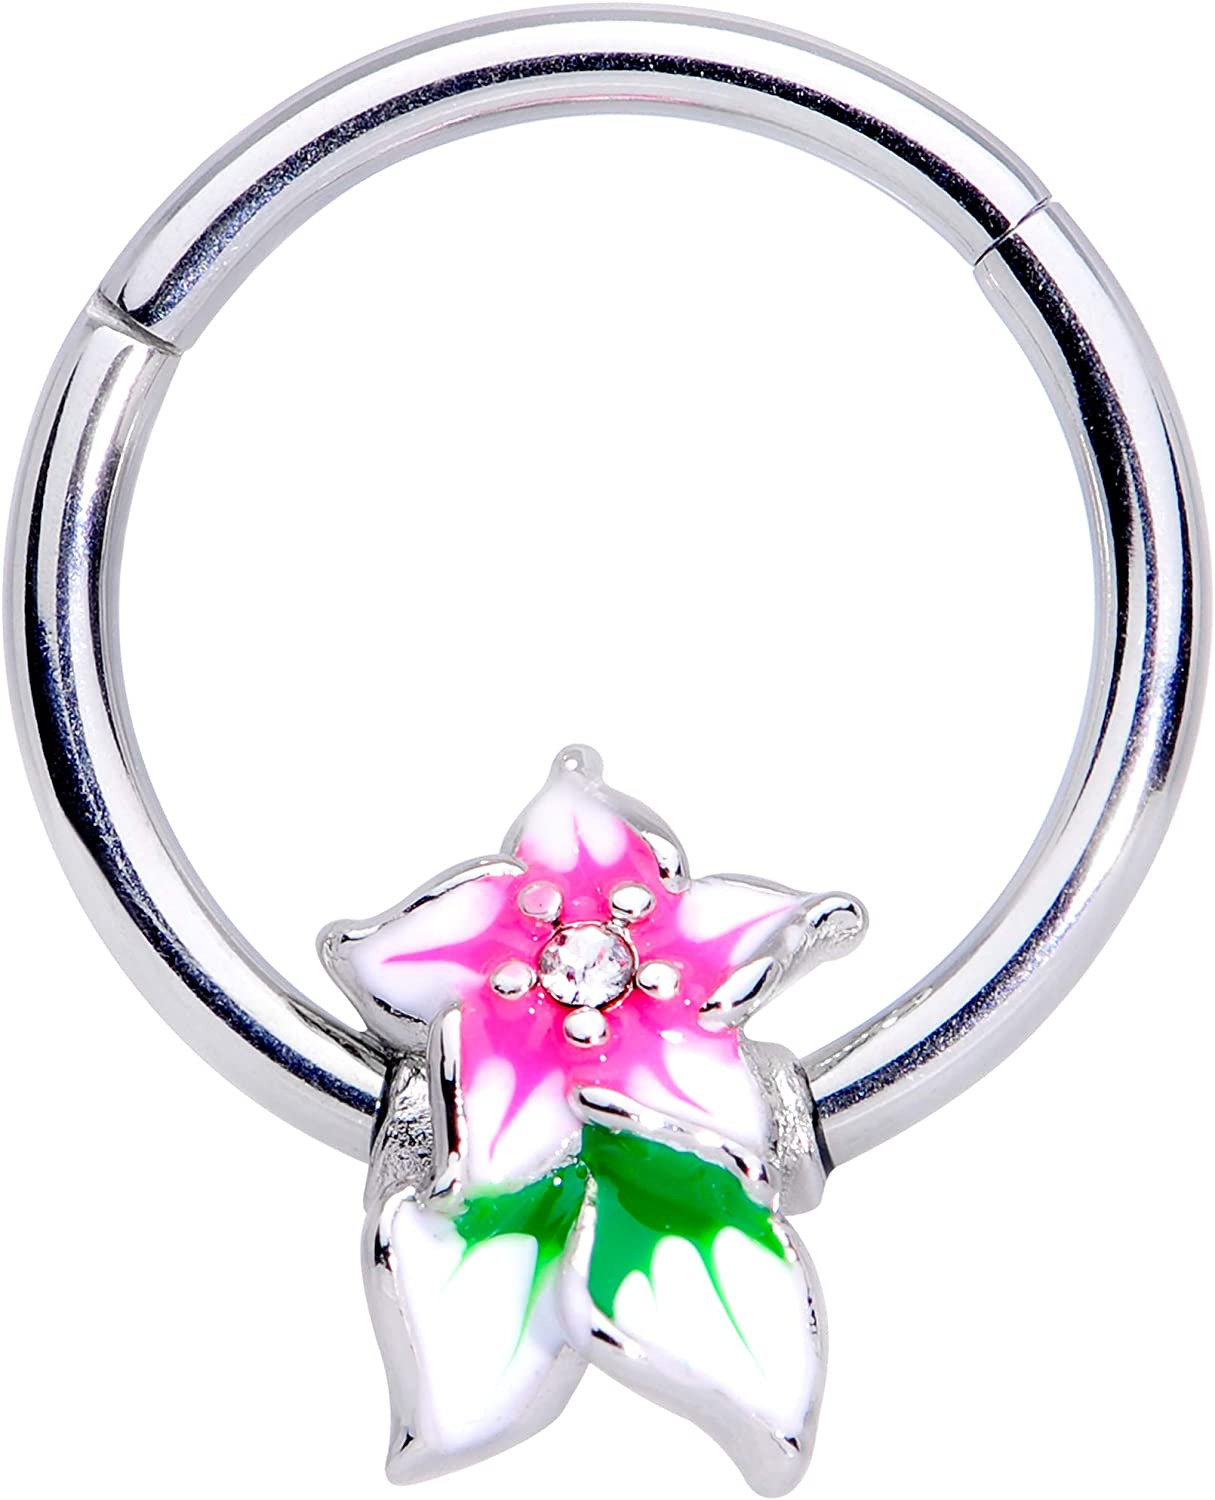 Body Candy Women 16G 316L Steel Septum Tropical Flower Daith Tragus Nose Ring Cartilage Clicker 3/8